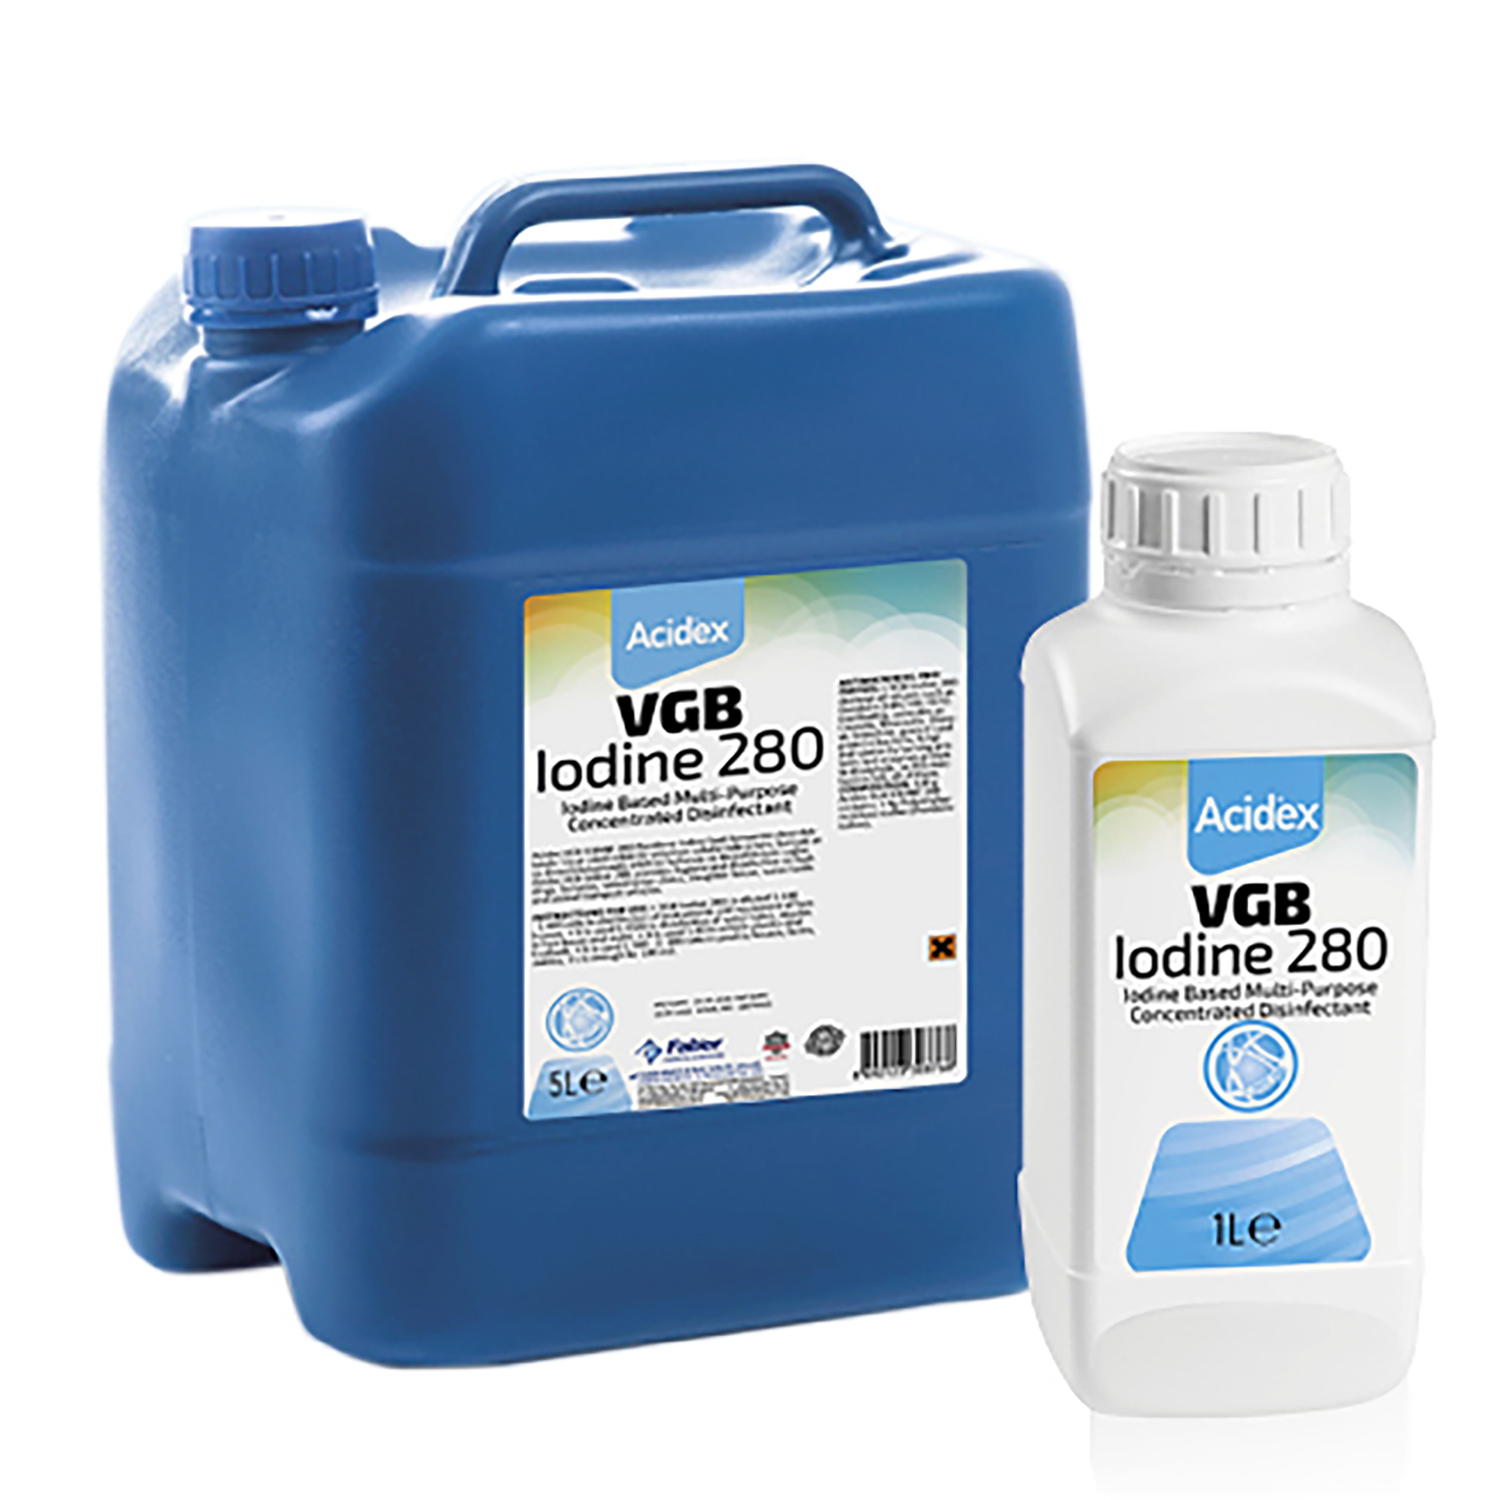 Acidex VGB Iodine 280